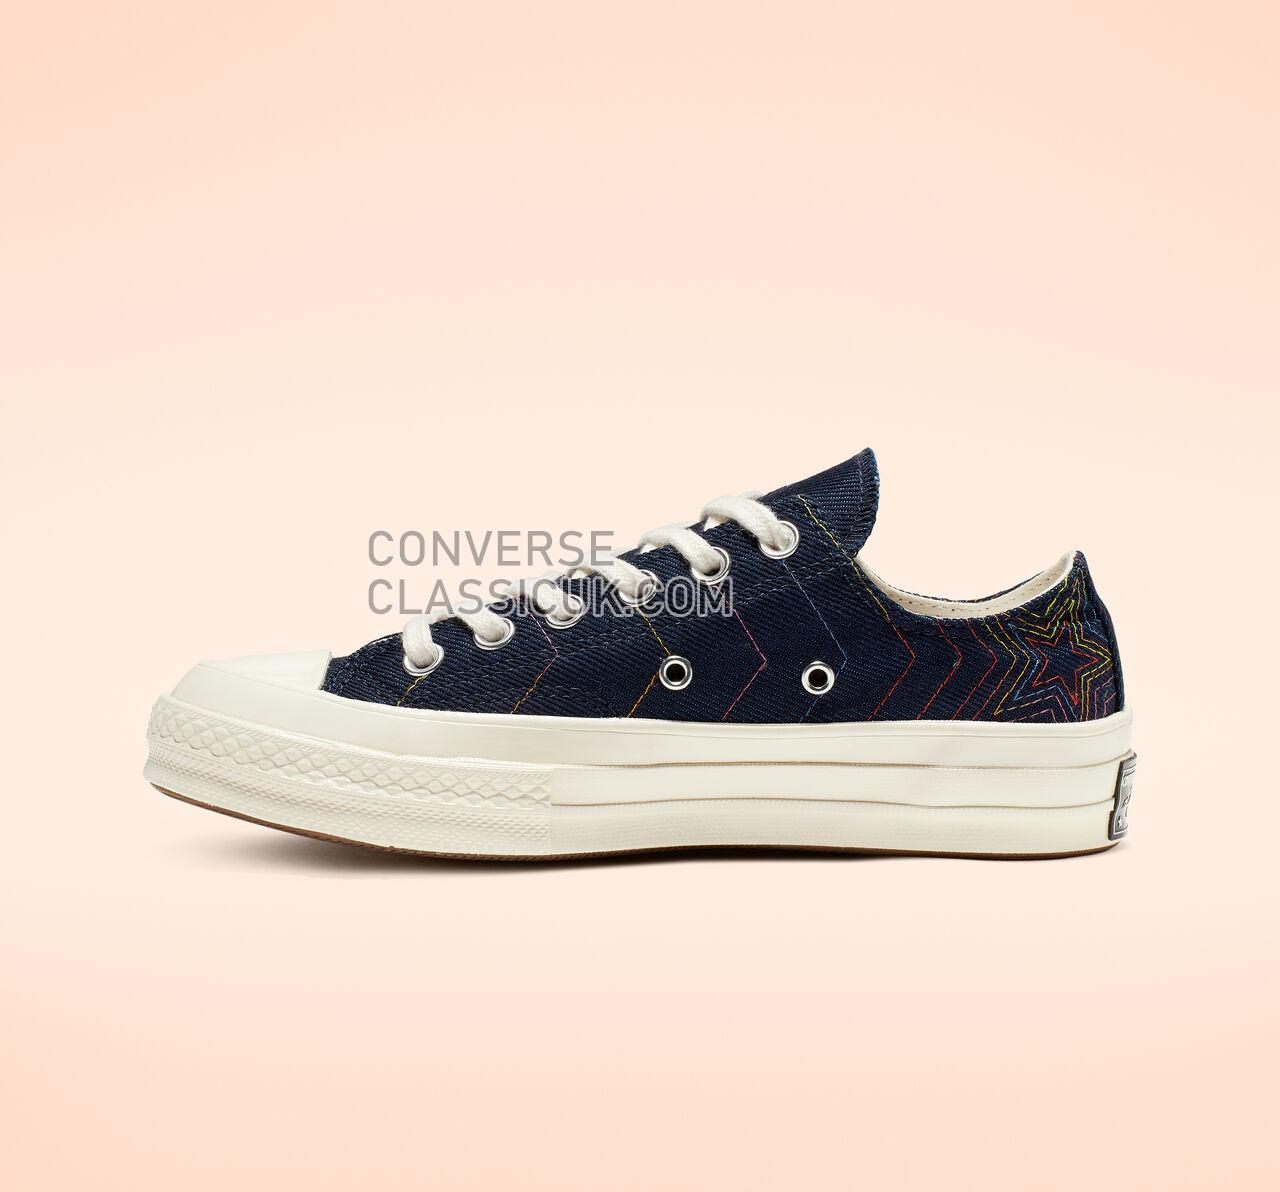 Converse Chuck 70 Exploding Star Low Top Mens Womens Unisex 164967C Obsidian/ Ozone Blue/ Egret Shoes